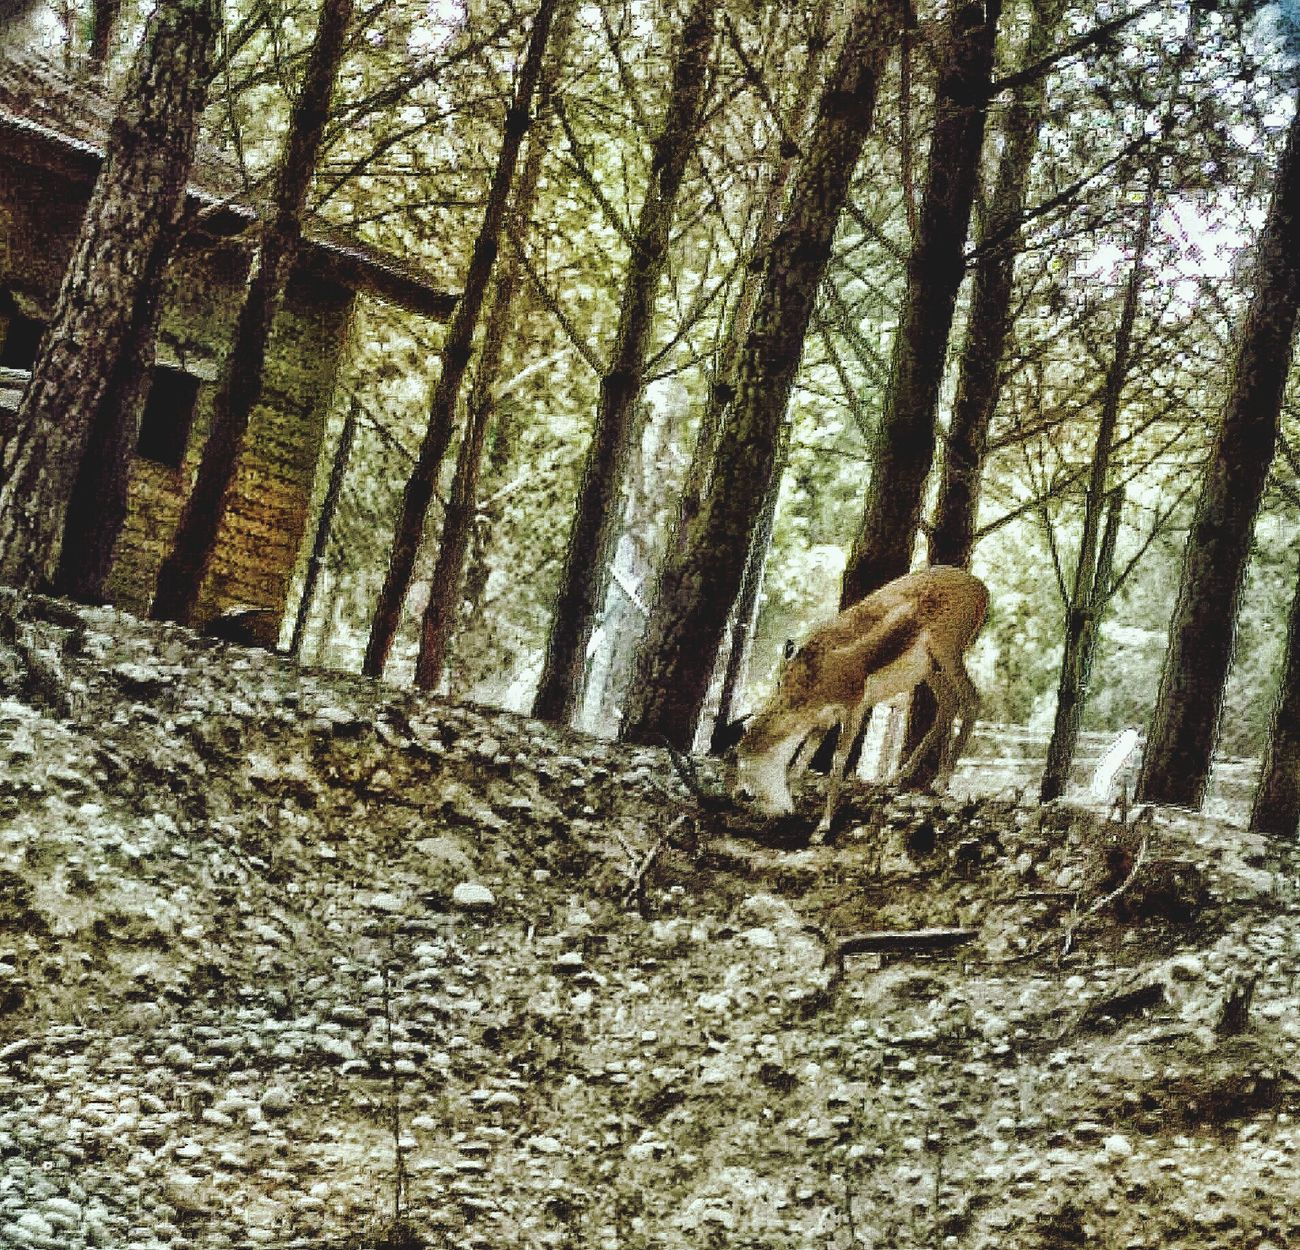 Mountain Nature Animal Photography Mountain Life Day One Person Real People Tree Outdoors Tree Trunk Men Full Length People First Eyeem Photo Deer Deers Nature Beauty Peace Deercamp